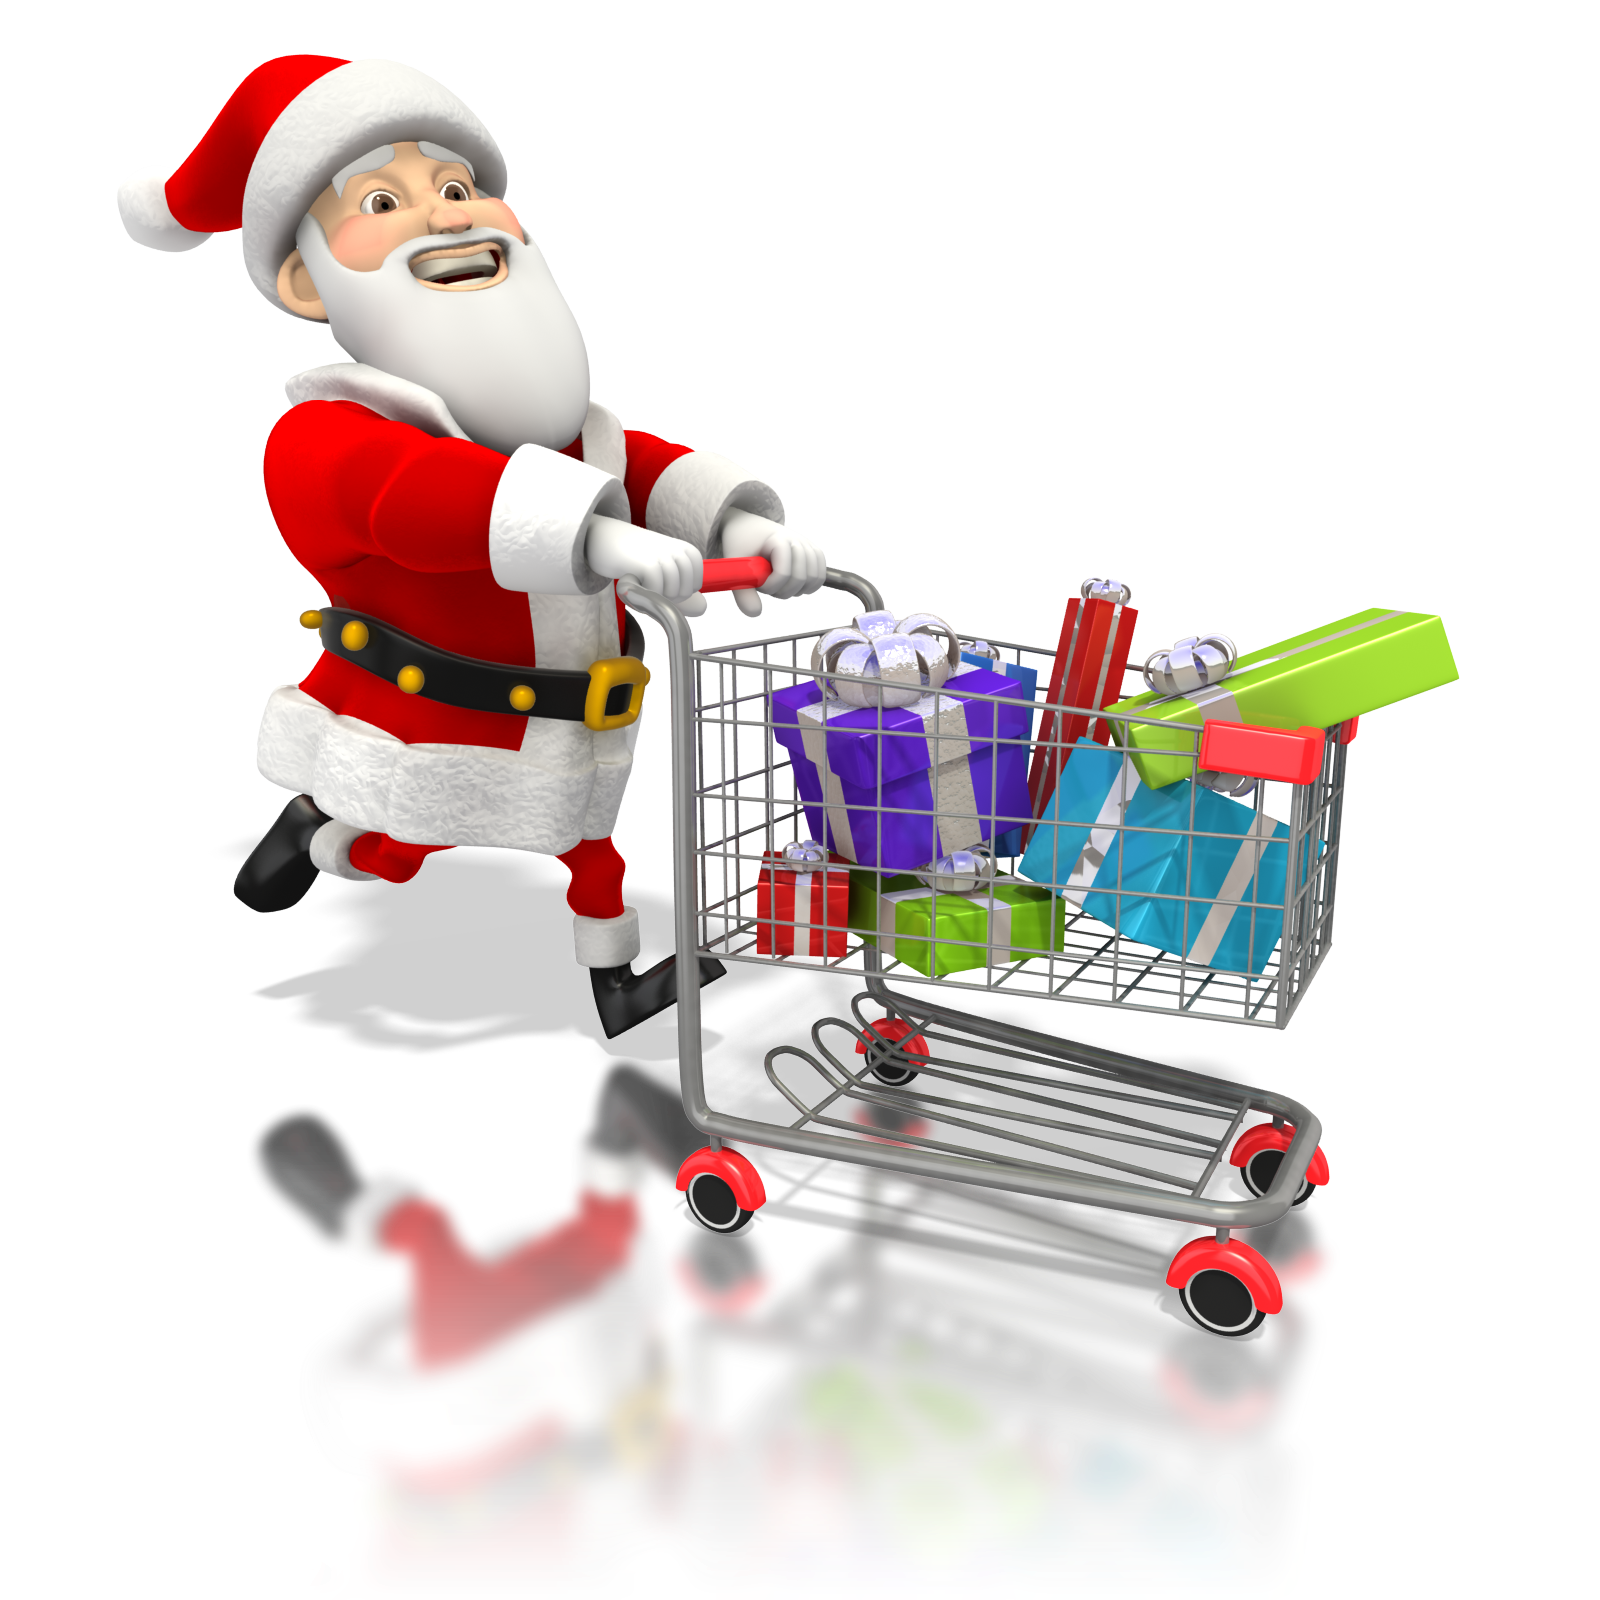 kisspng-santa-claus-shopping-cart-online-shopping-clip-art-push-cart-5aeed55d18f621.0756502315256016291023.png